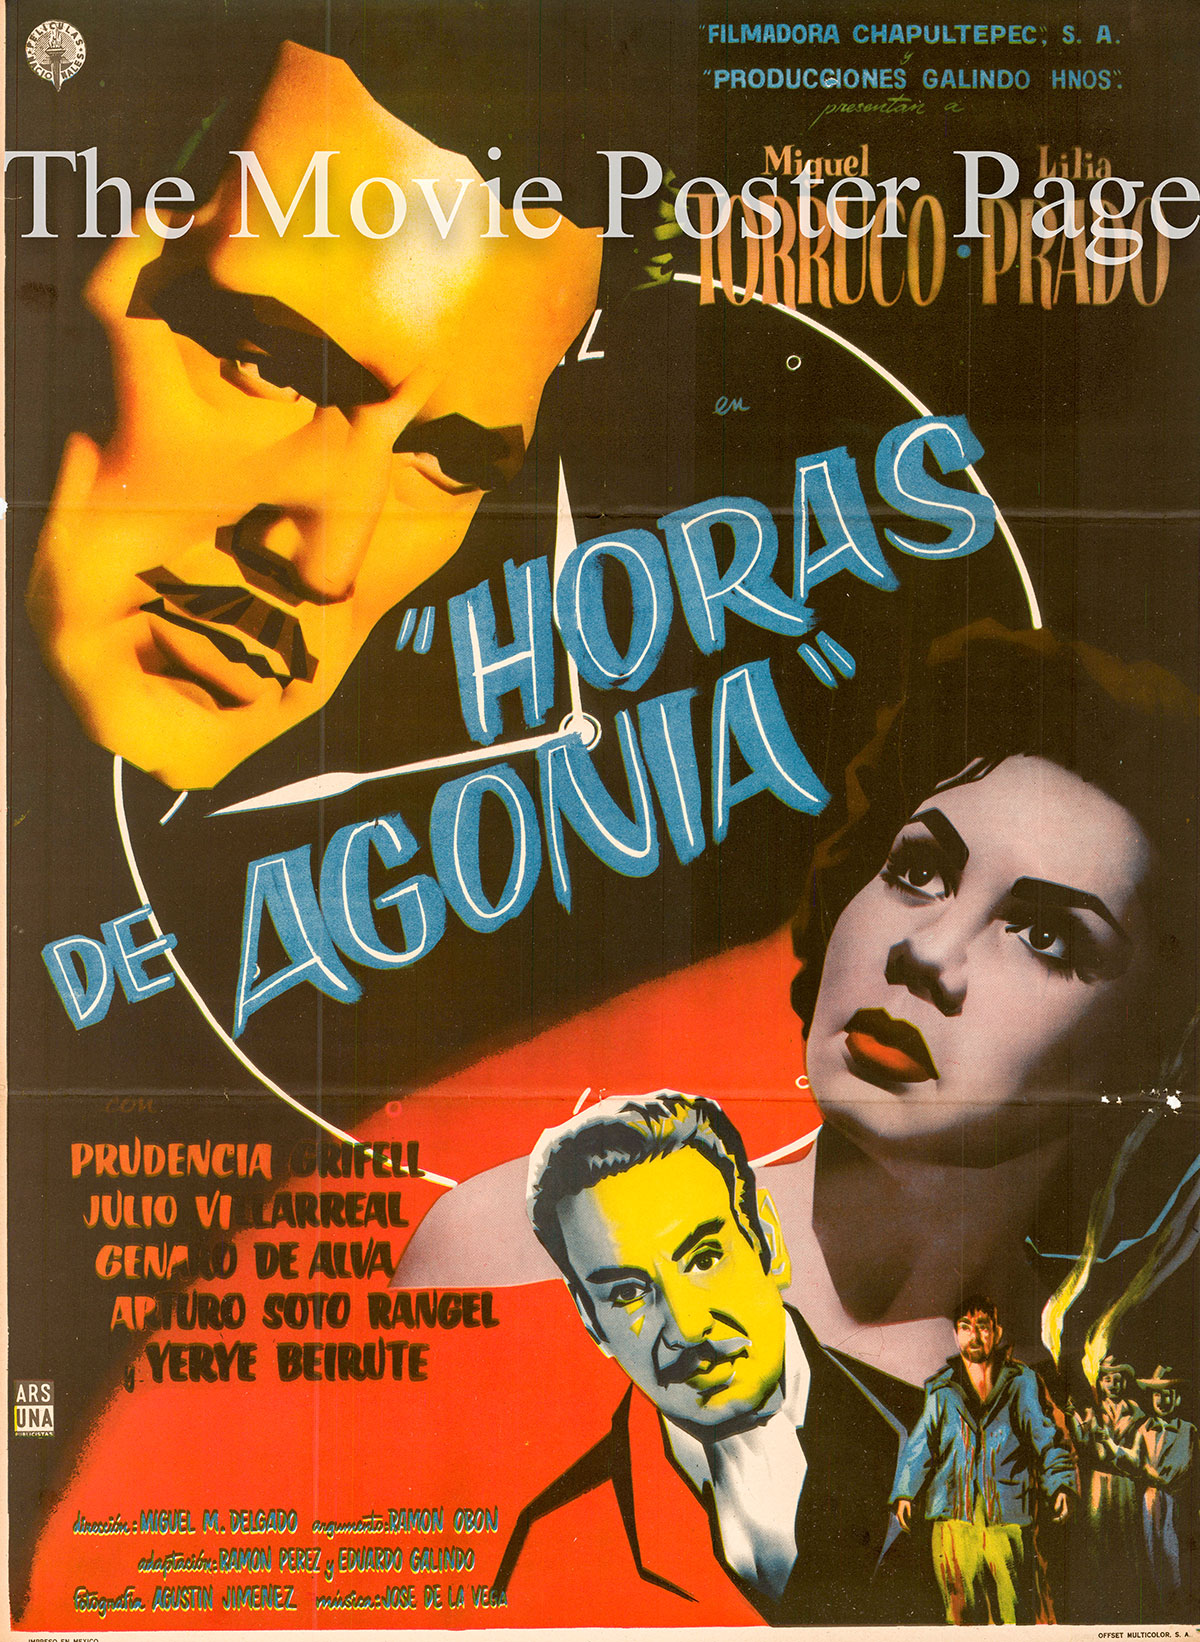 Pictured is a Mexican one-sheet poster for the 1958 Miguel Delgado film Horas de Agonia starring Miguel Torruco.